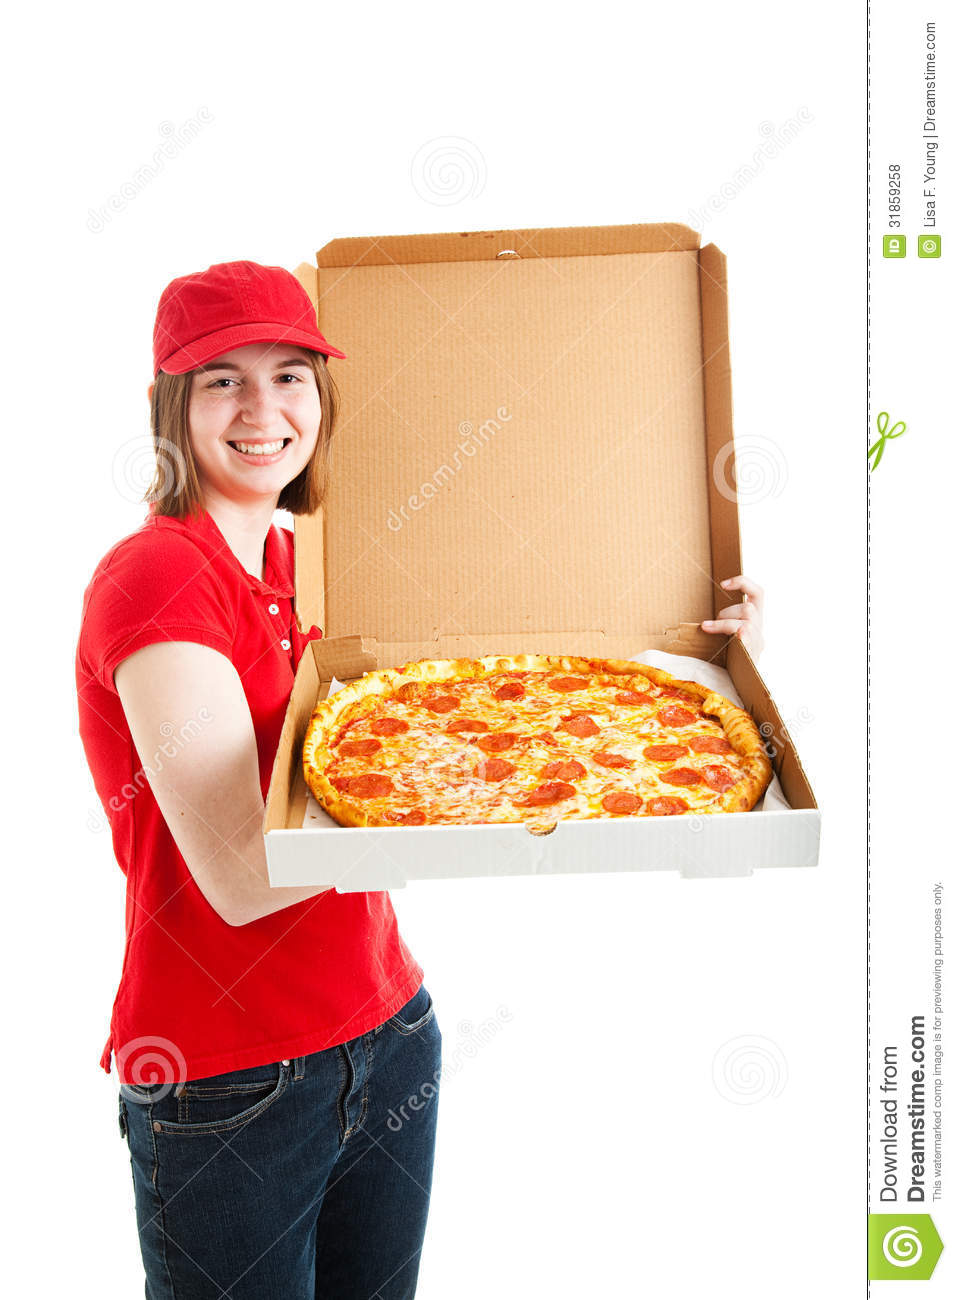 Teen Jobs - Pizza Delivery Royalty Free Stock Photos - Image: 31859258